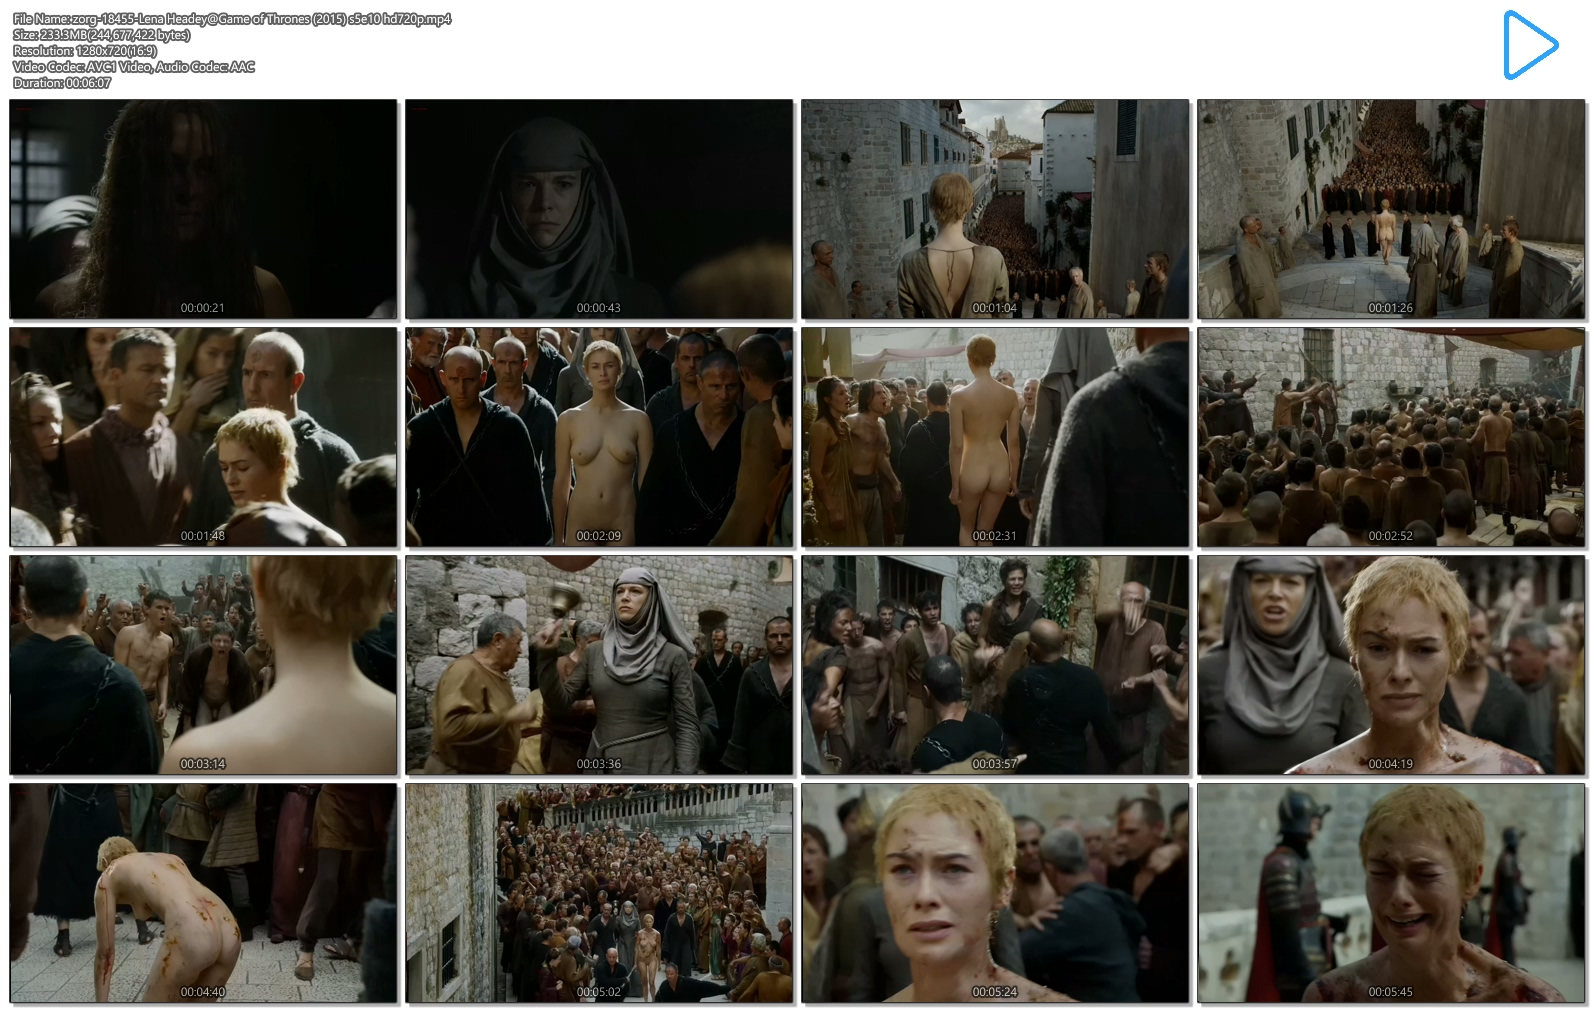 Lena Headey nude full frontal bush - Game of Thrones (2015) s5e10 hd720-1080p (22)